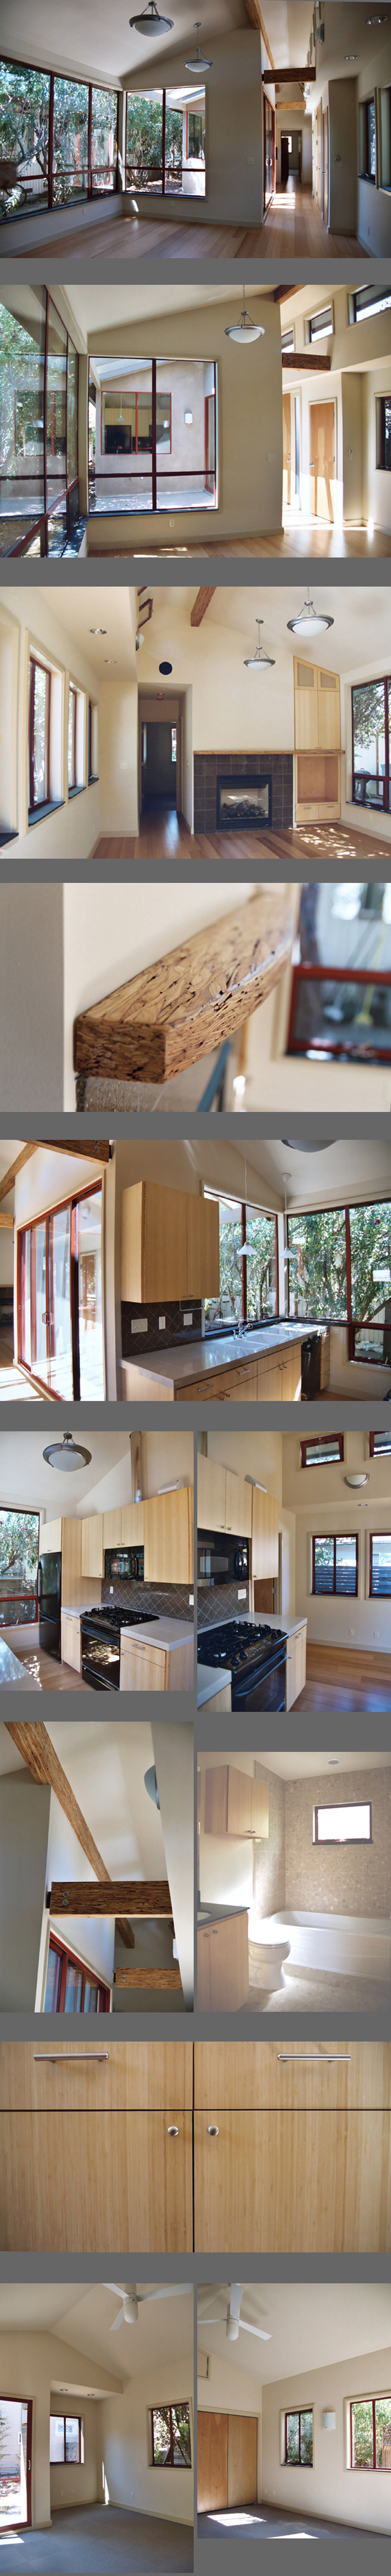 Faculty House, ENR architects with Topos Architects, Palo Alto, CA 94306 - interiors